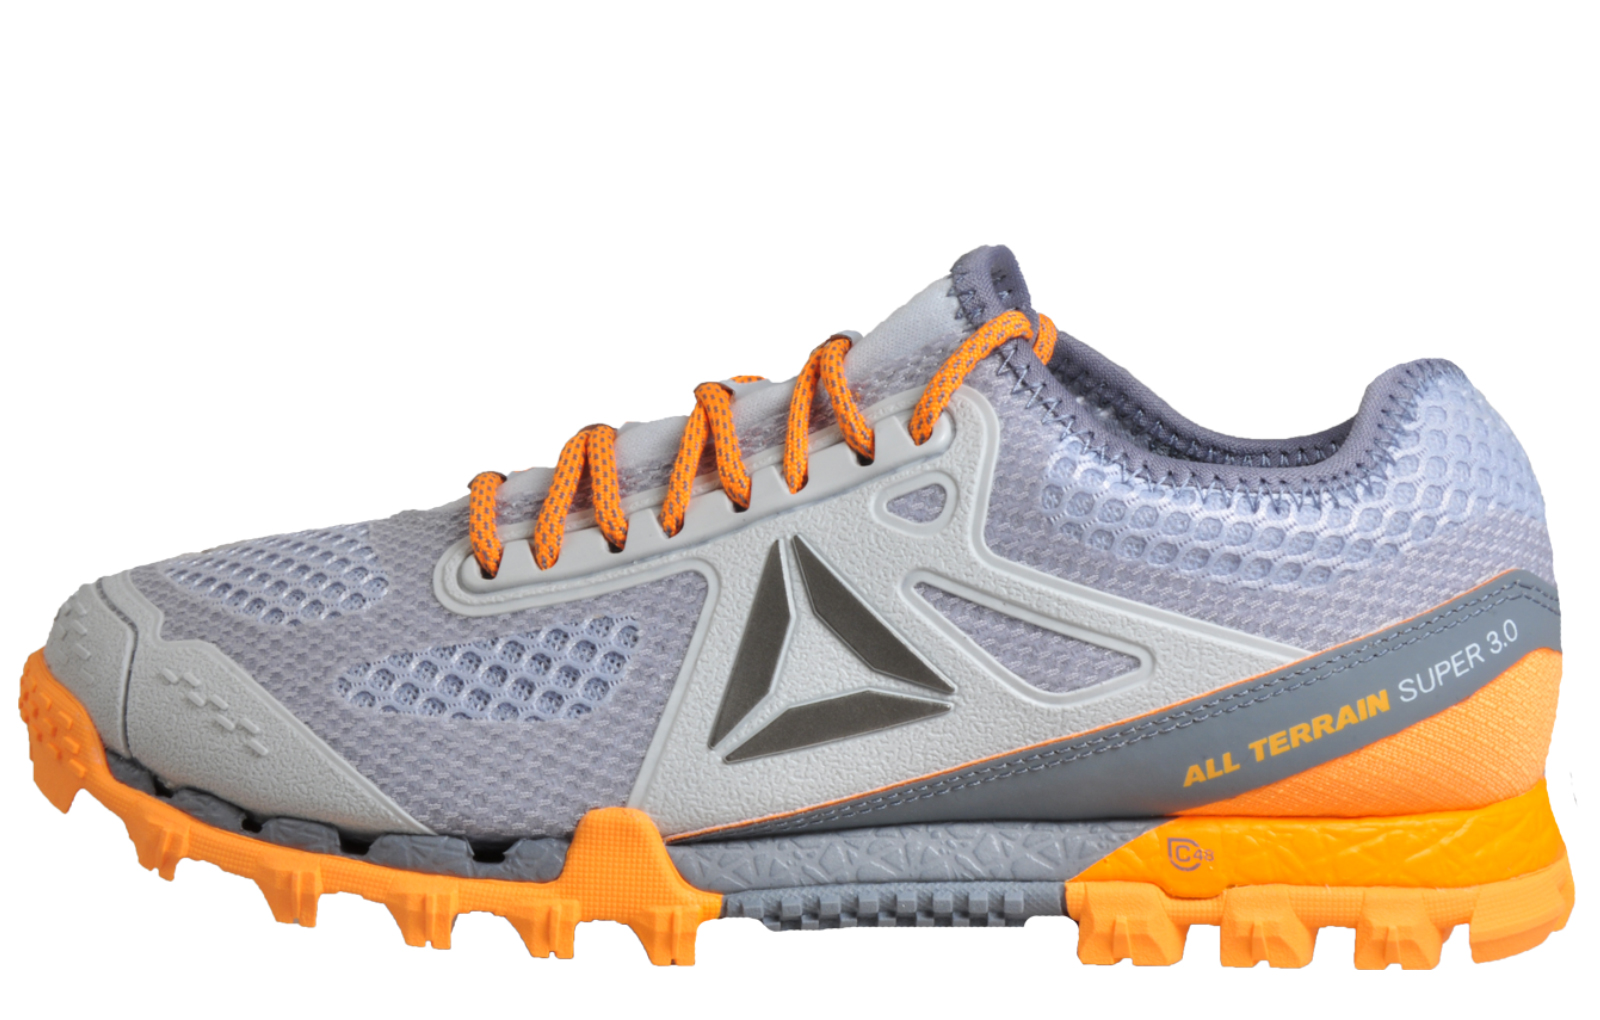 Reebok All Terrain Super 3.0 Womens - RE169672